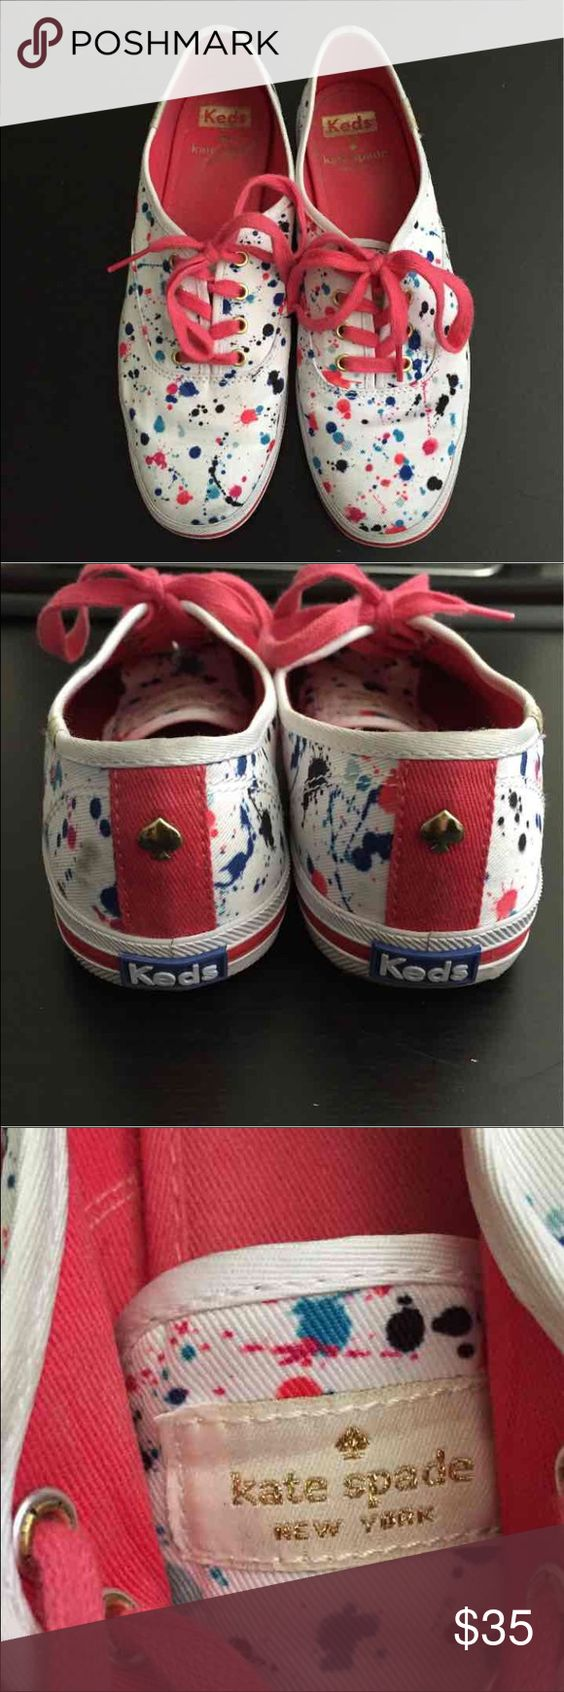 Kate Spade sneakers by Keds Super cute Kate Spade edition by Keds. In Very Good condition. Keds Shoes Sneakers